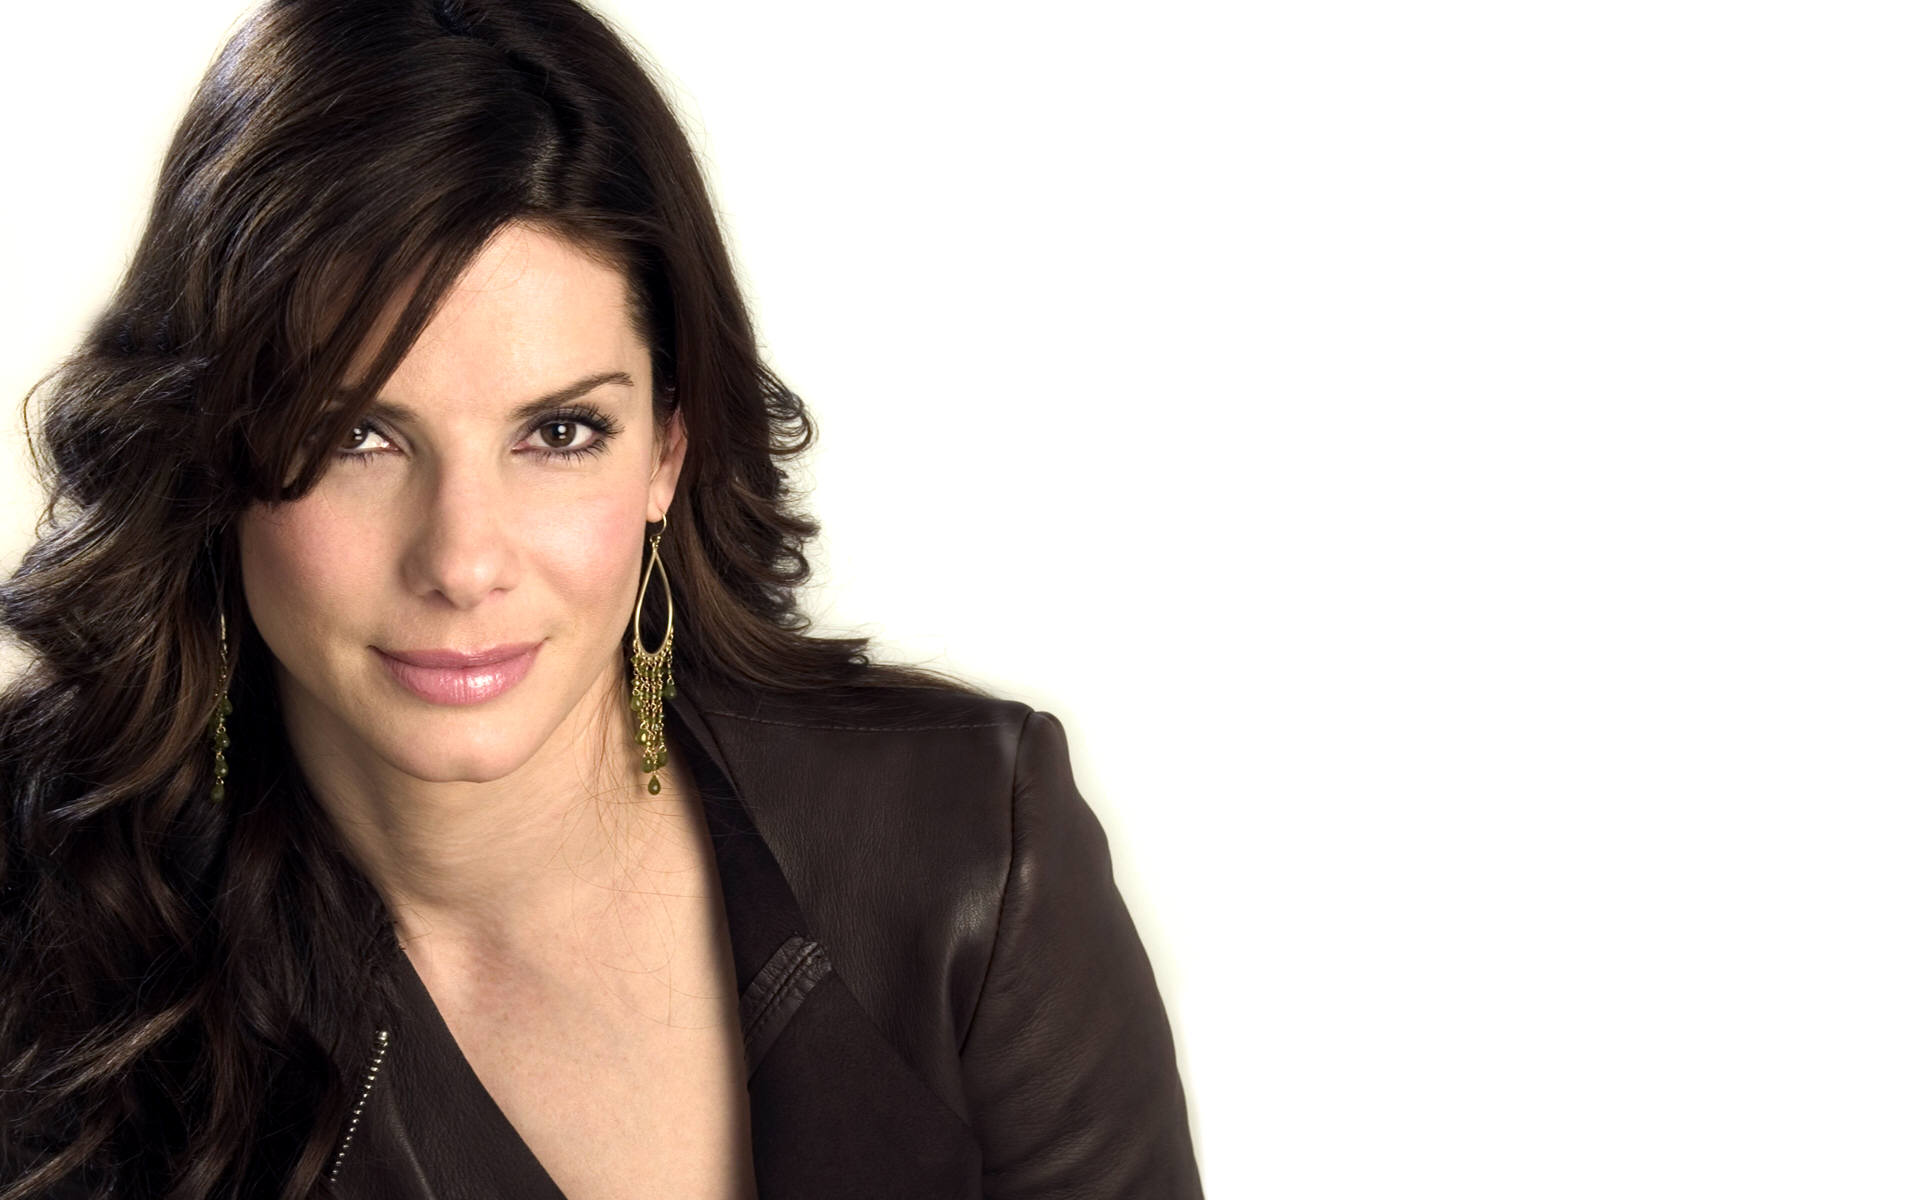 ... Sandra Bullock Wallpaper ...